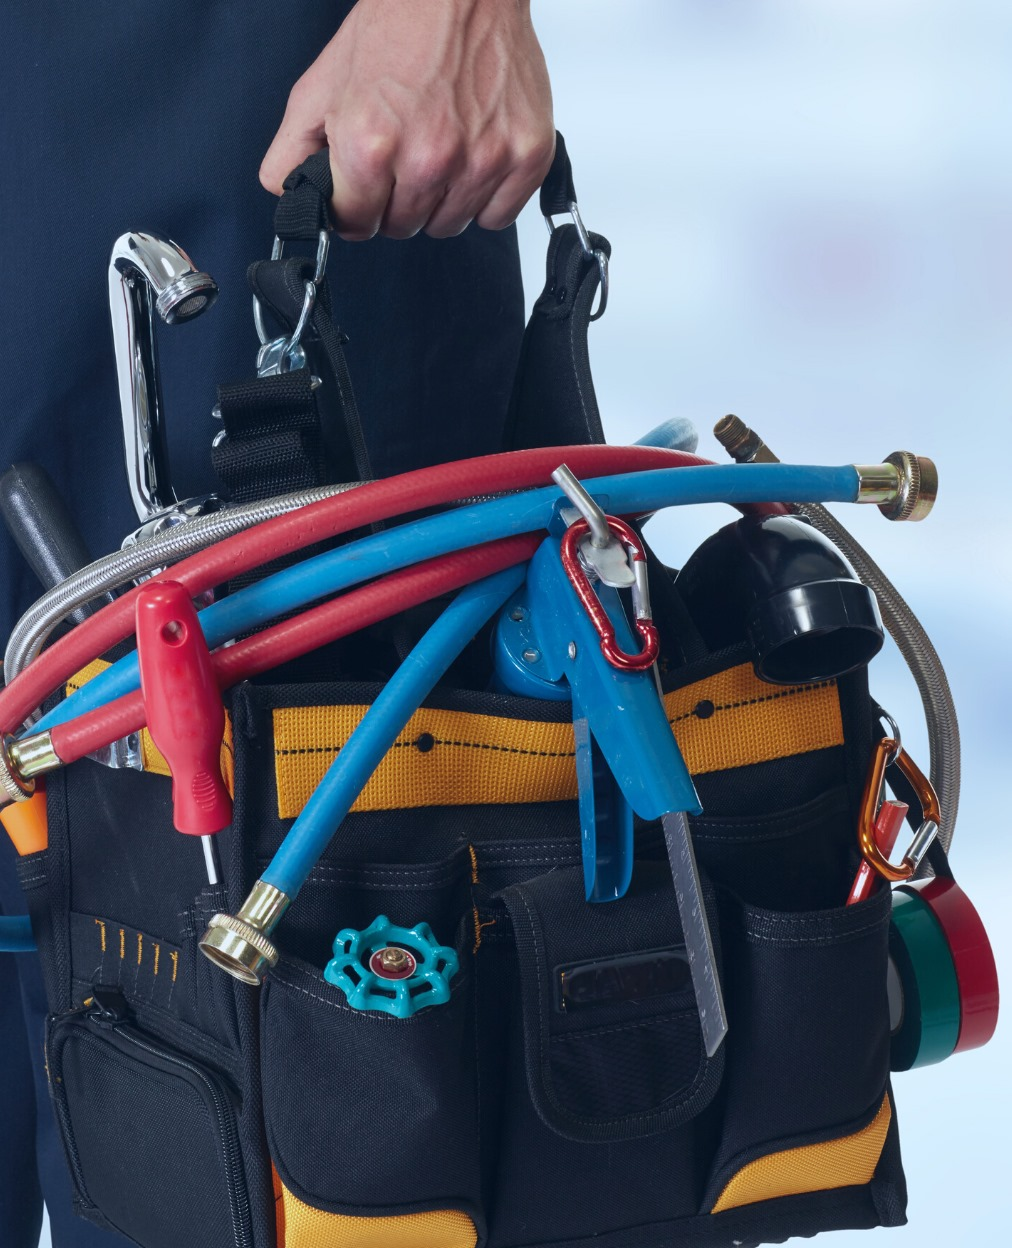 Local Plumbers and Plumbing Services in London